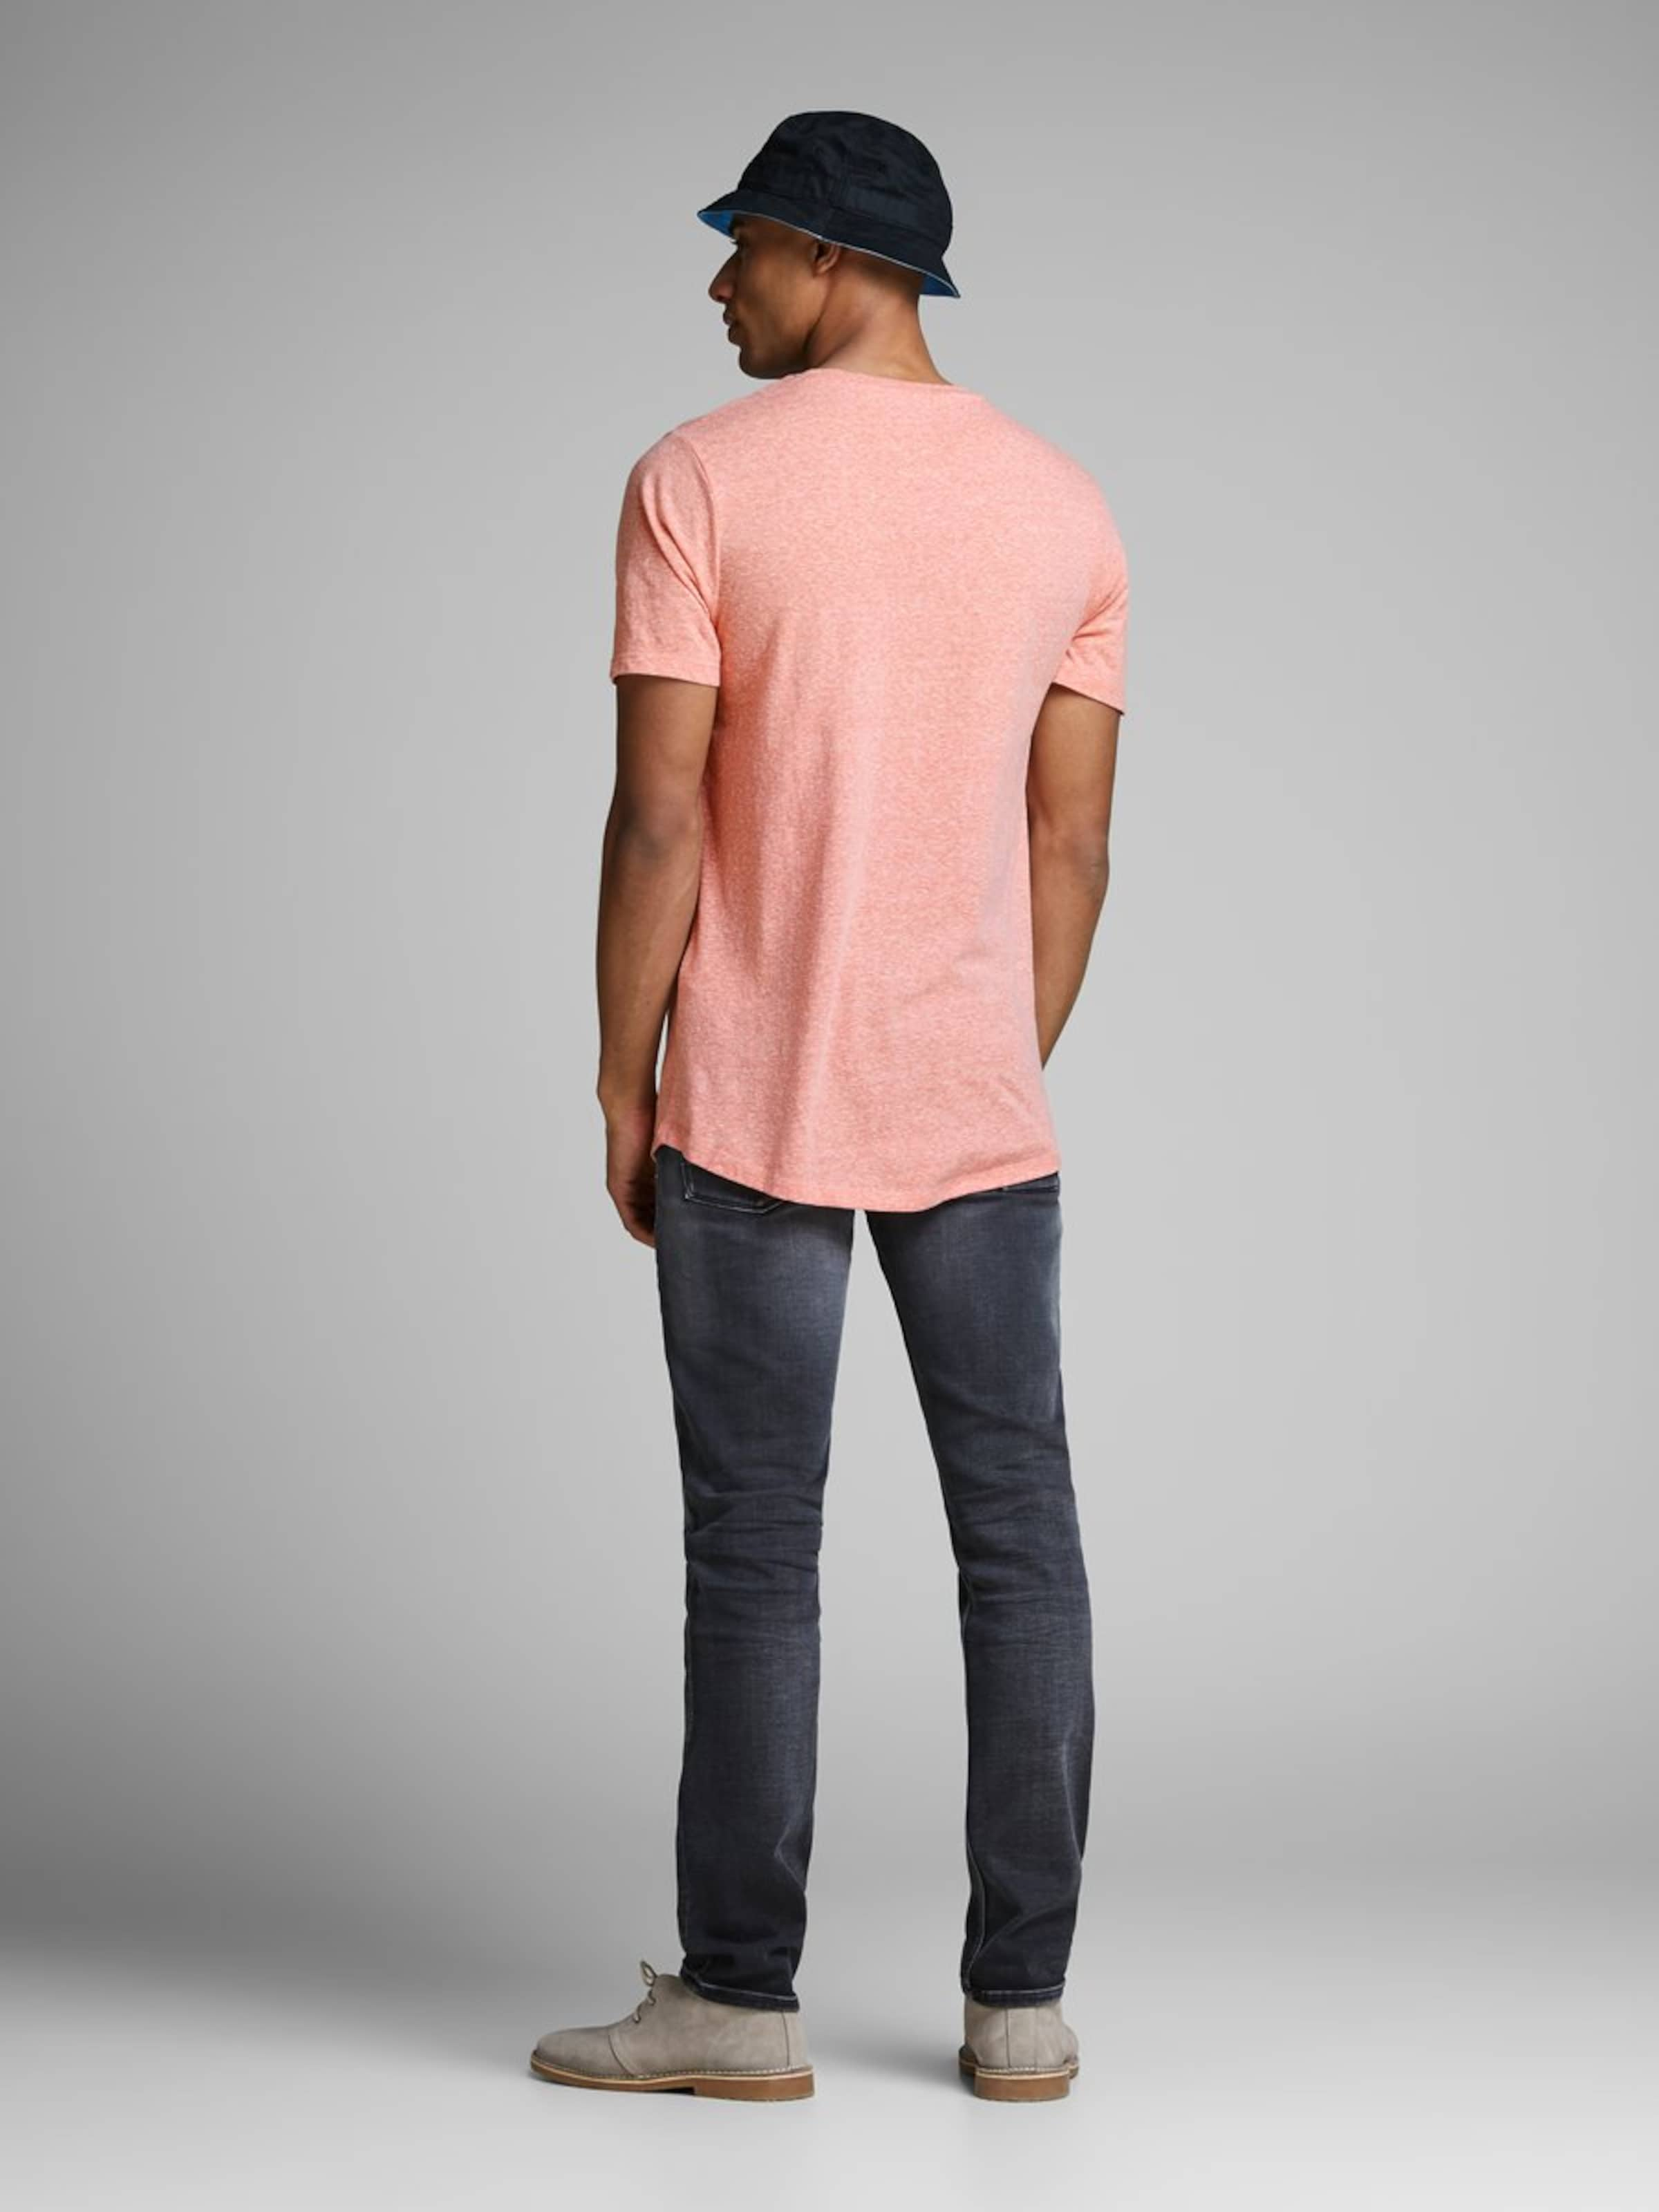 Jackamp; In shirt Rosa T Jones dWxoCBre